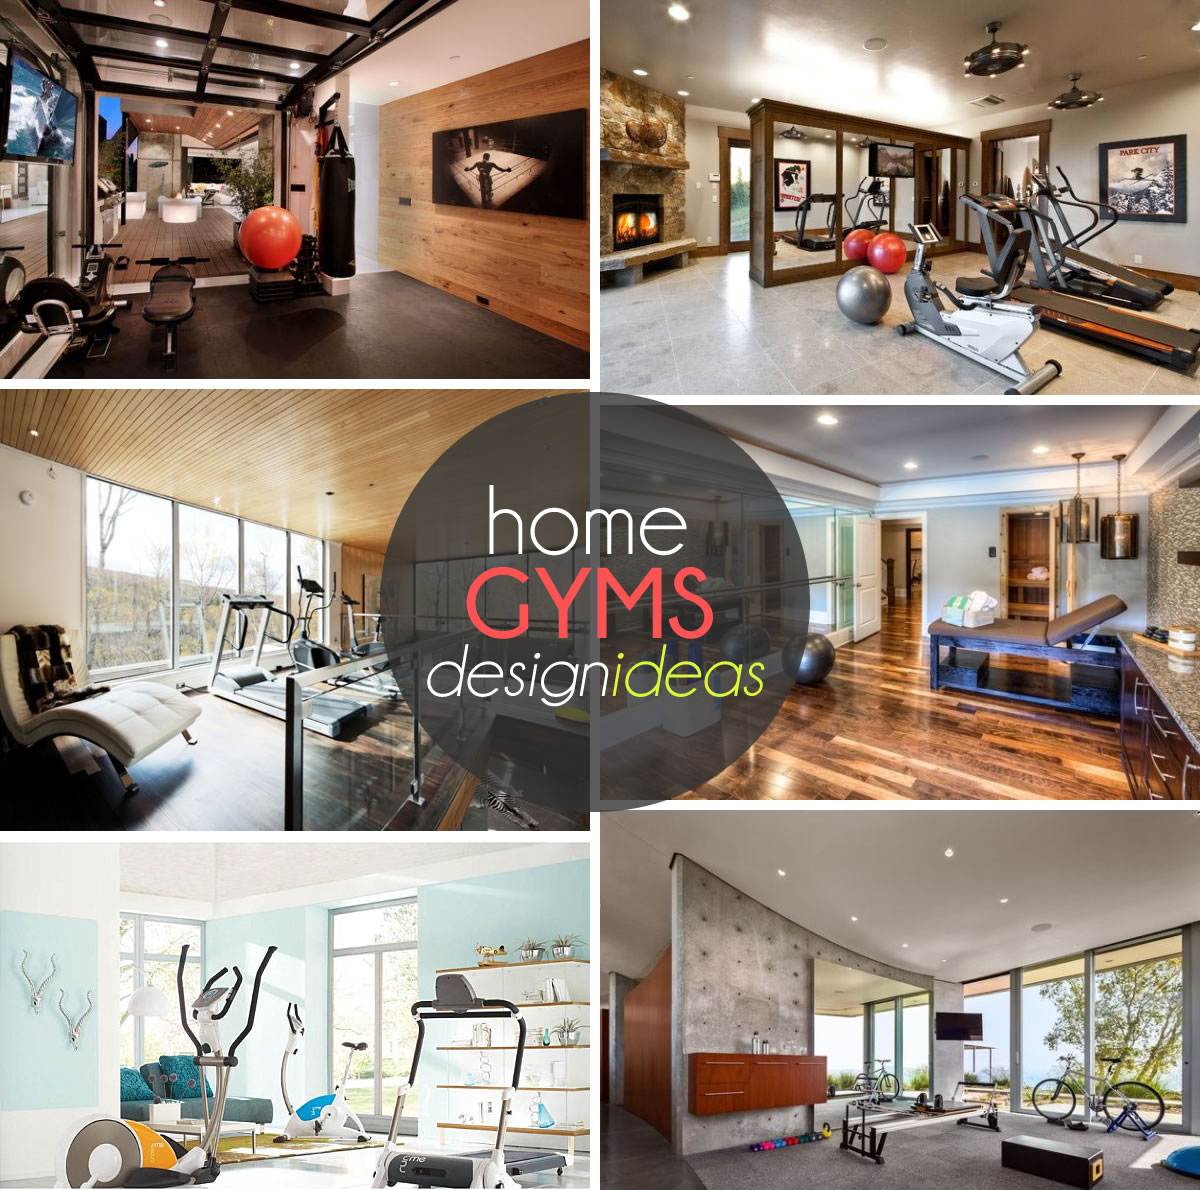 Superior View In Gallery Exquisite Home Gym Design Ideas Design Ideas